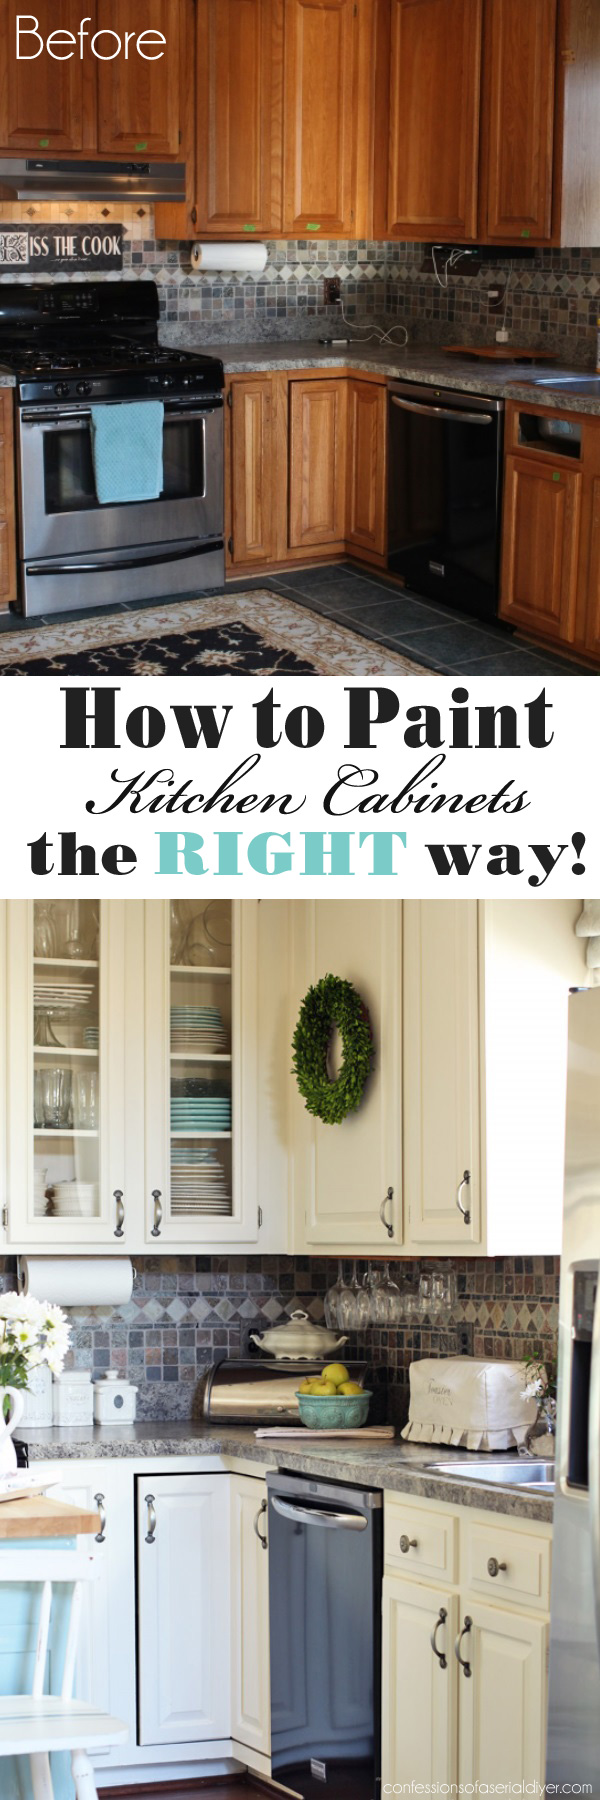 how to paint kitchen cabinets a step by step guide With best brand of paint for kitchen cabinets with wall art panel